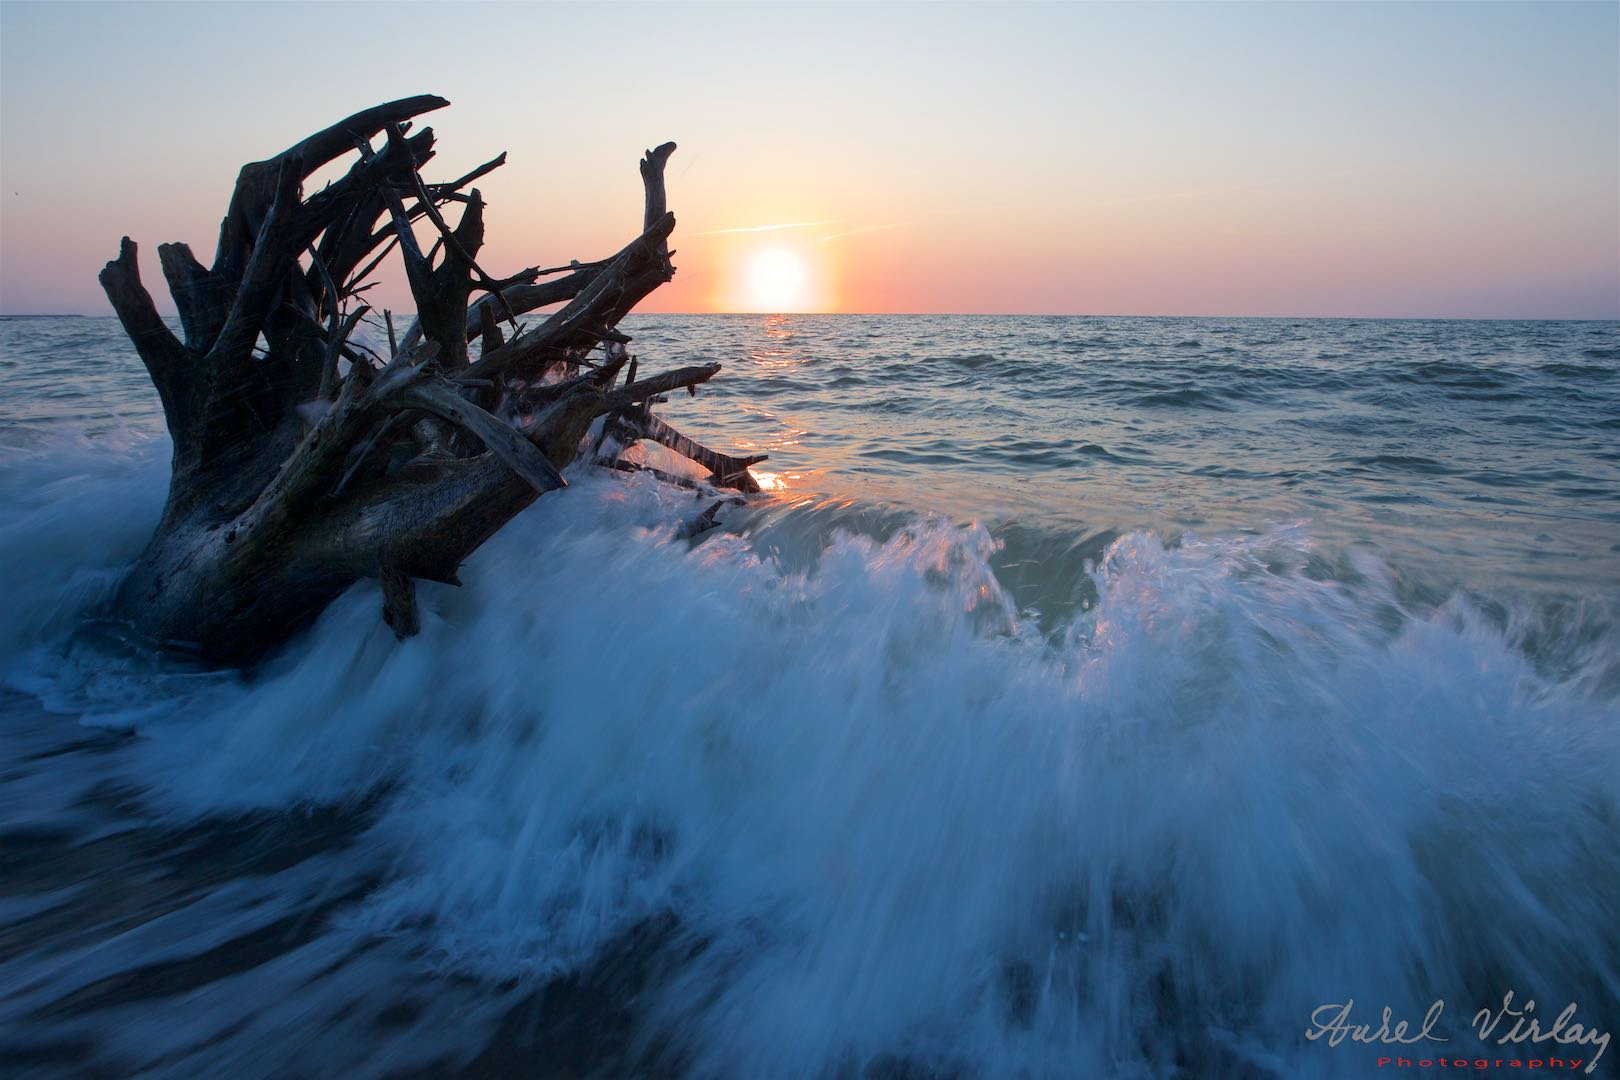 Roots of a tree brought to shore by the waves of the sea.